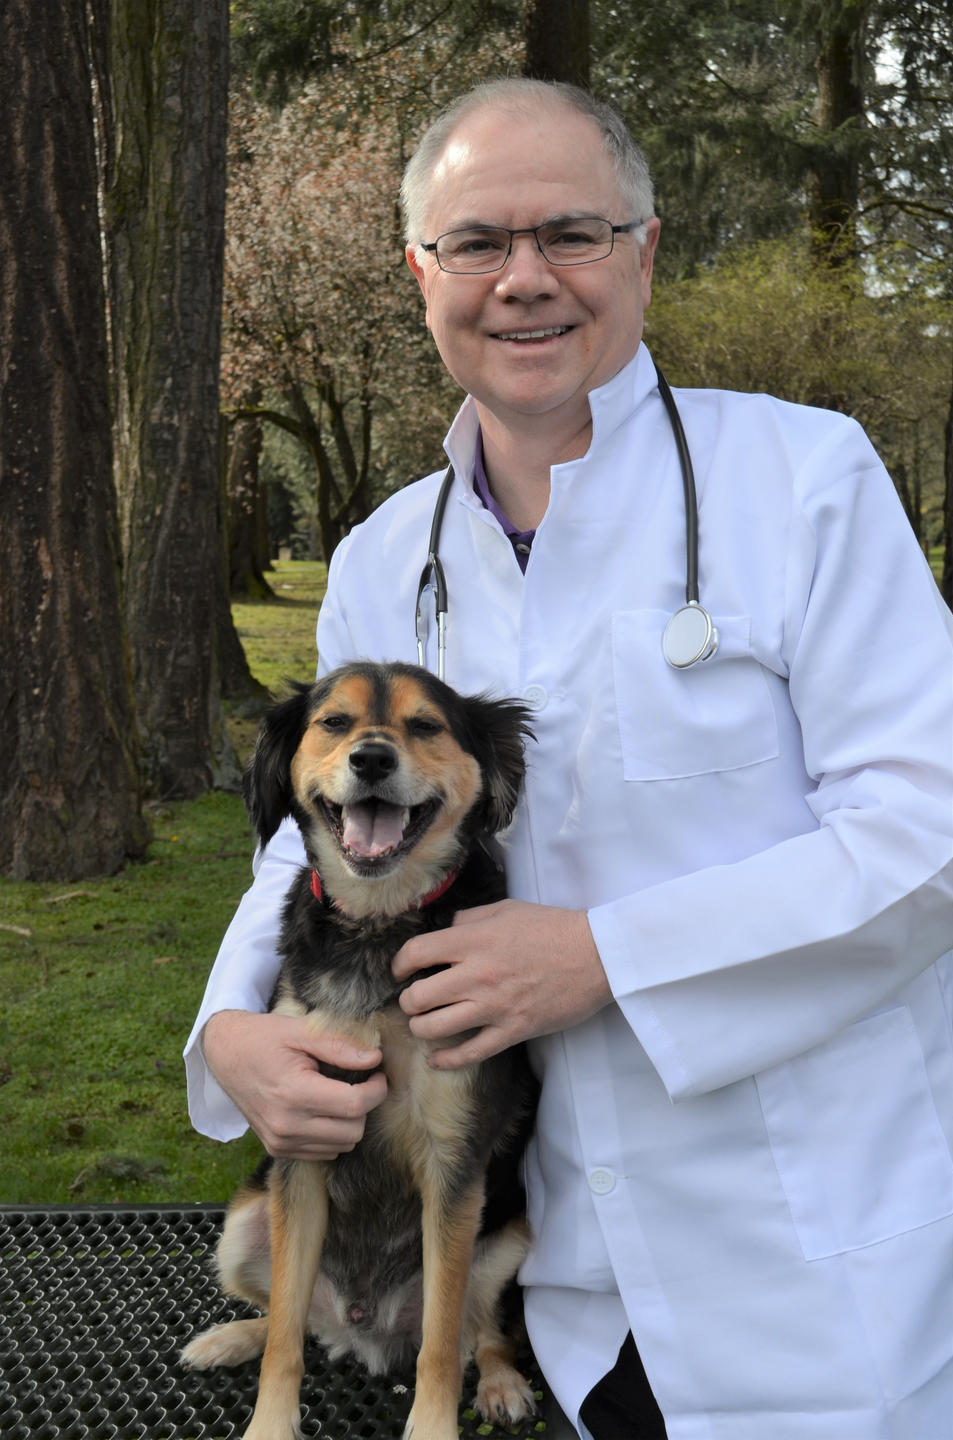 The Investment Doctor and The Investment Dogtor